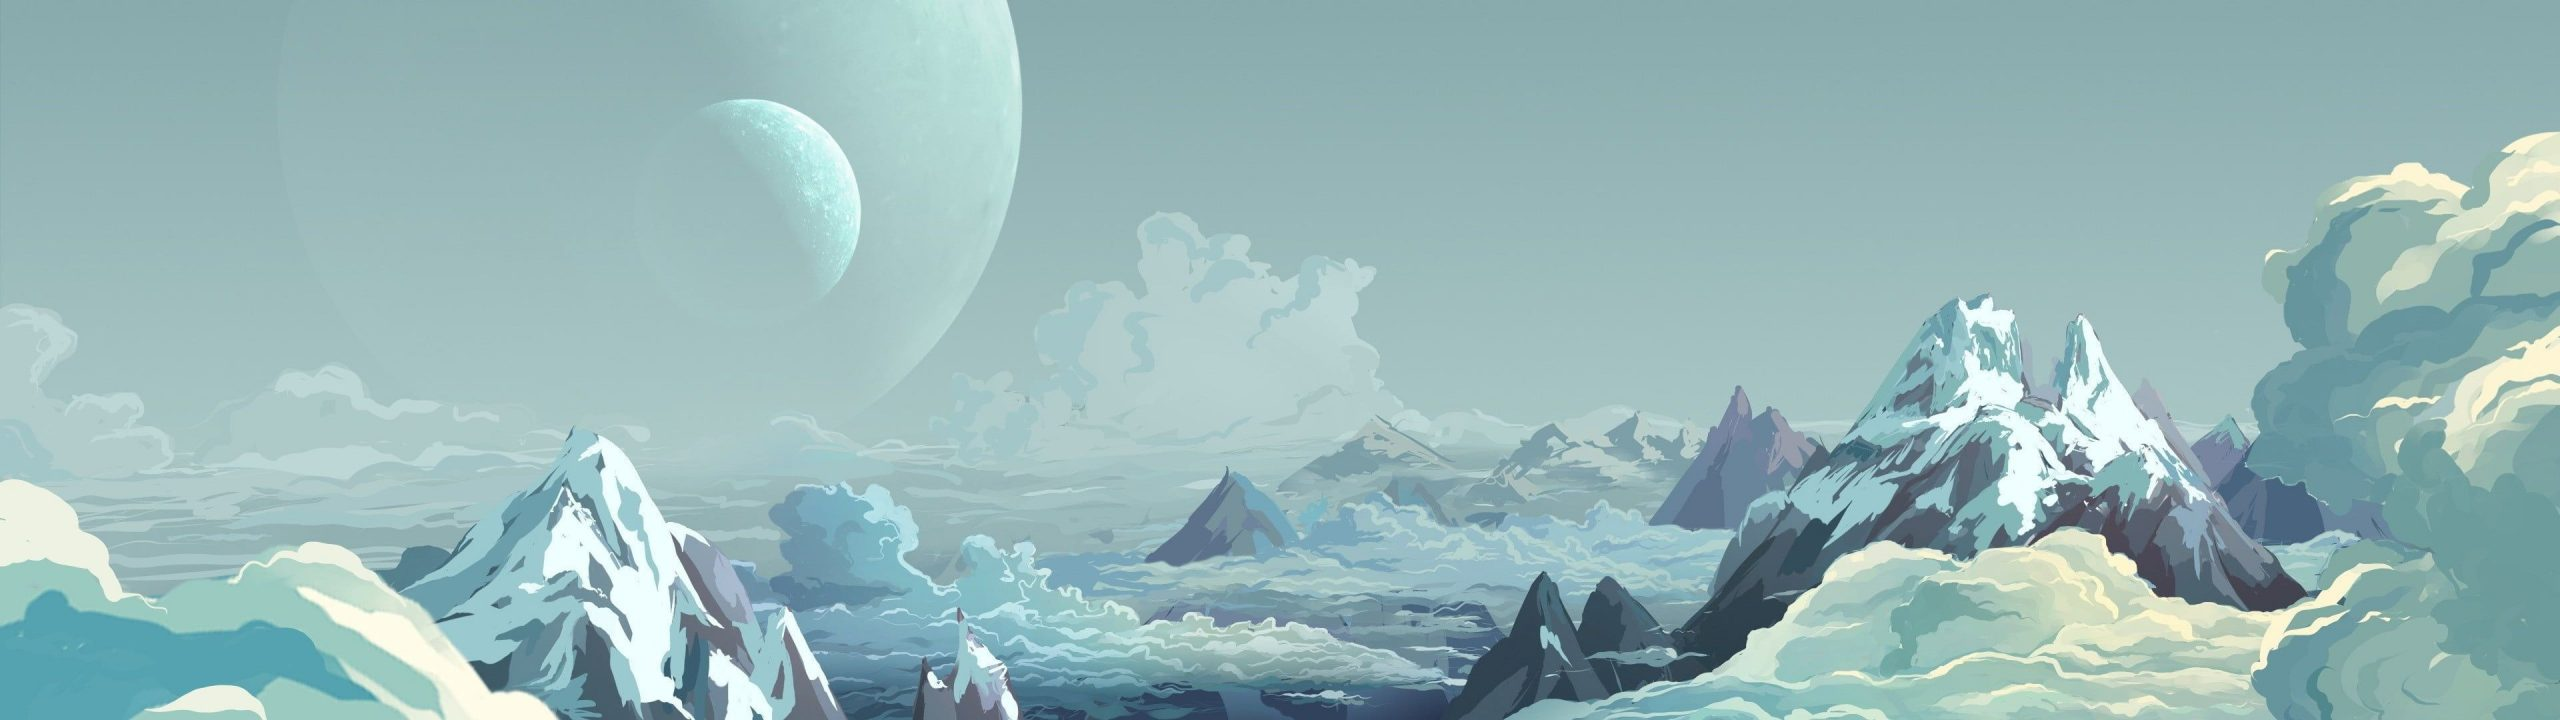 HD wallpaper alps digital wallpaper mountain with whit clouds during daytime artwork painting